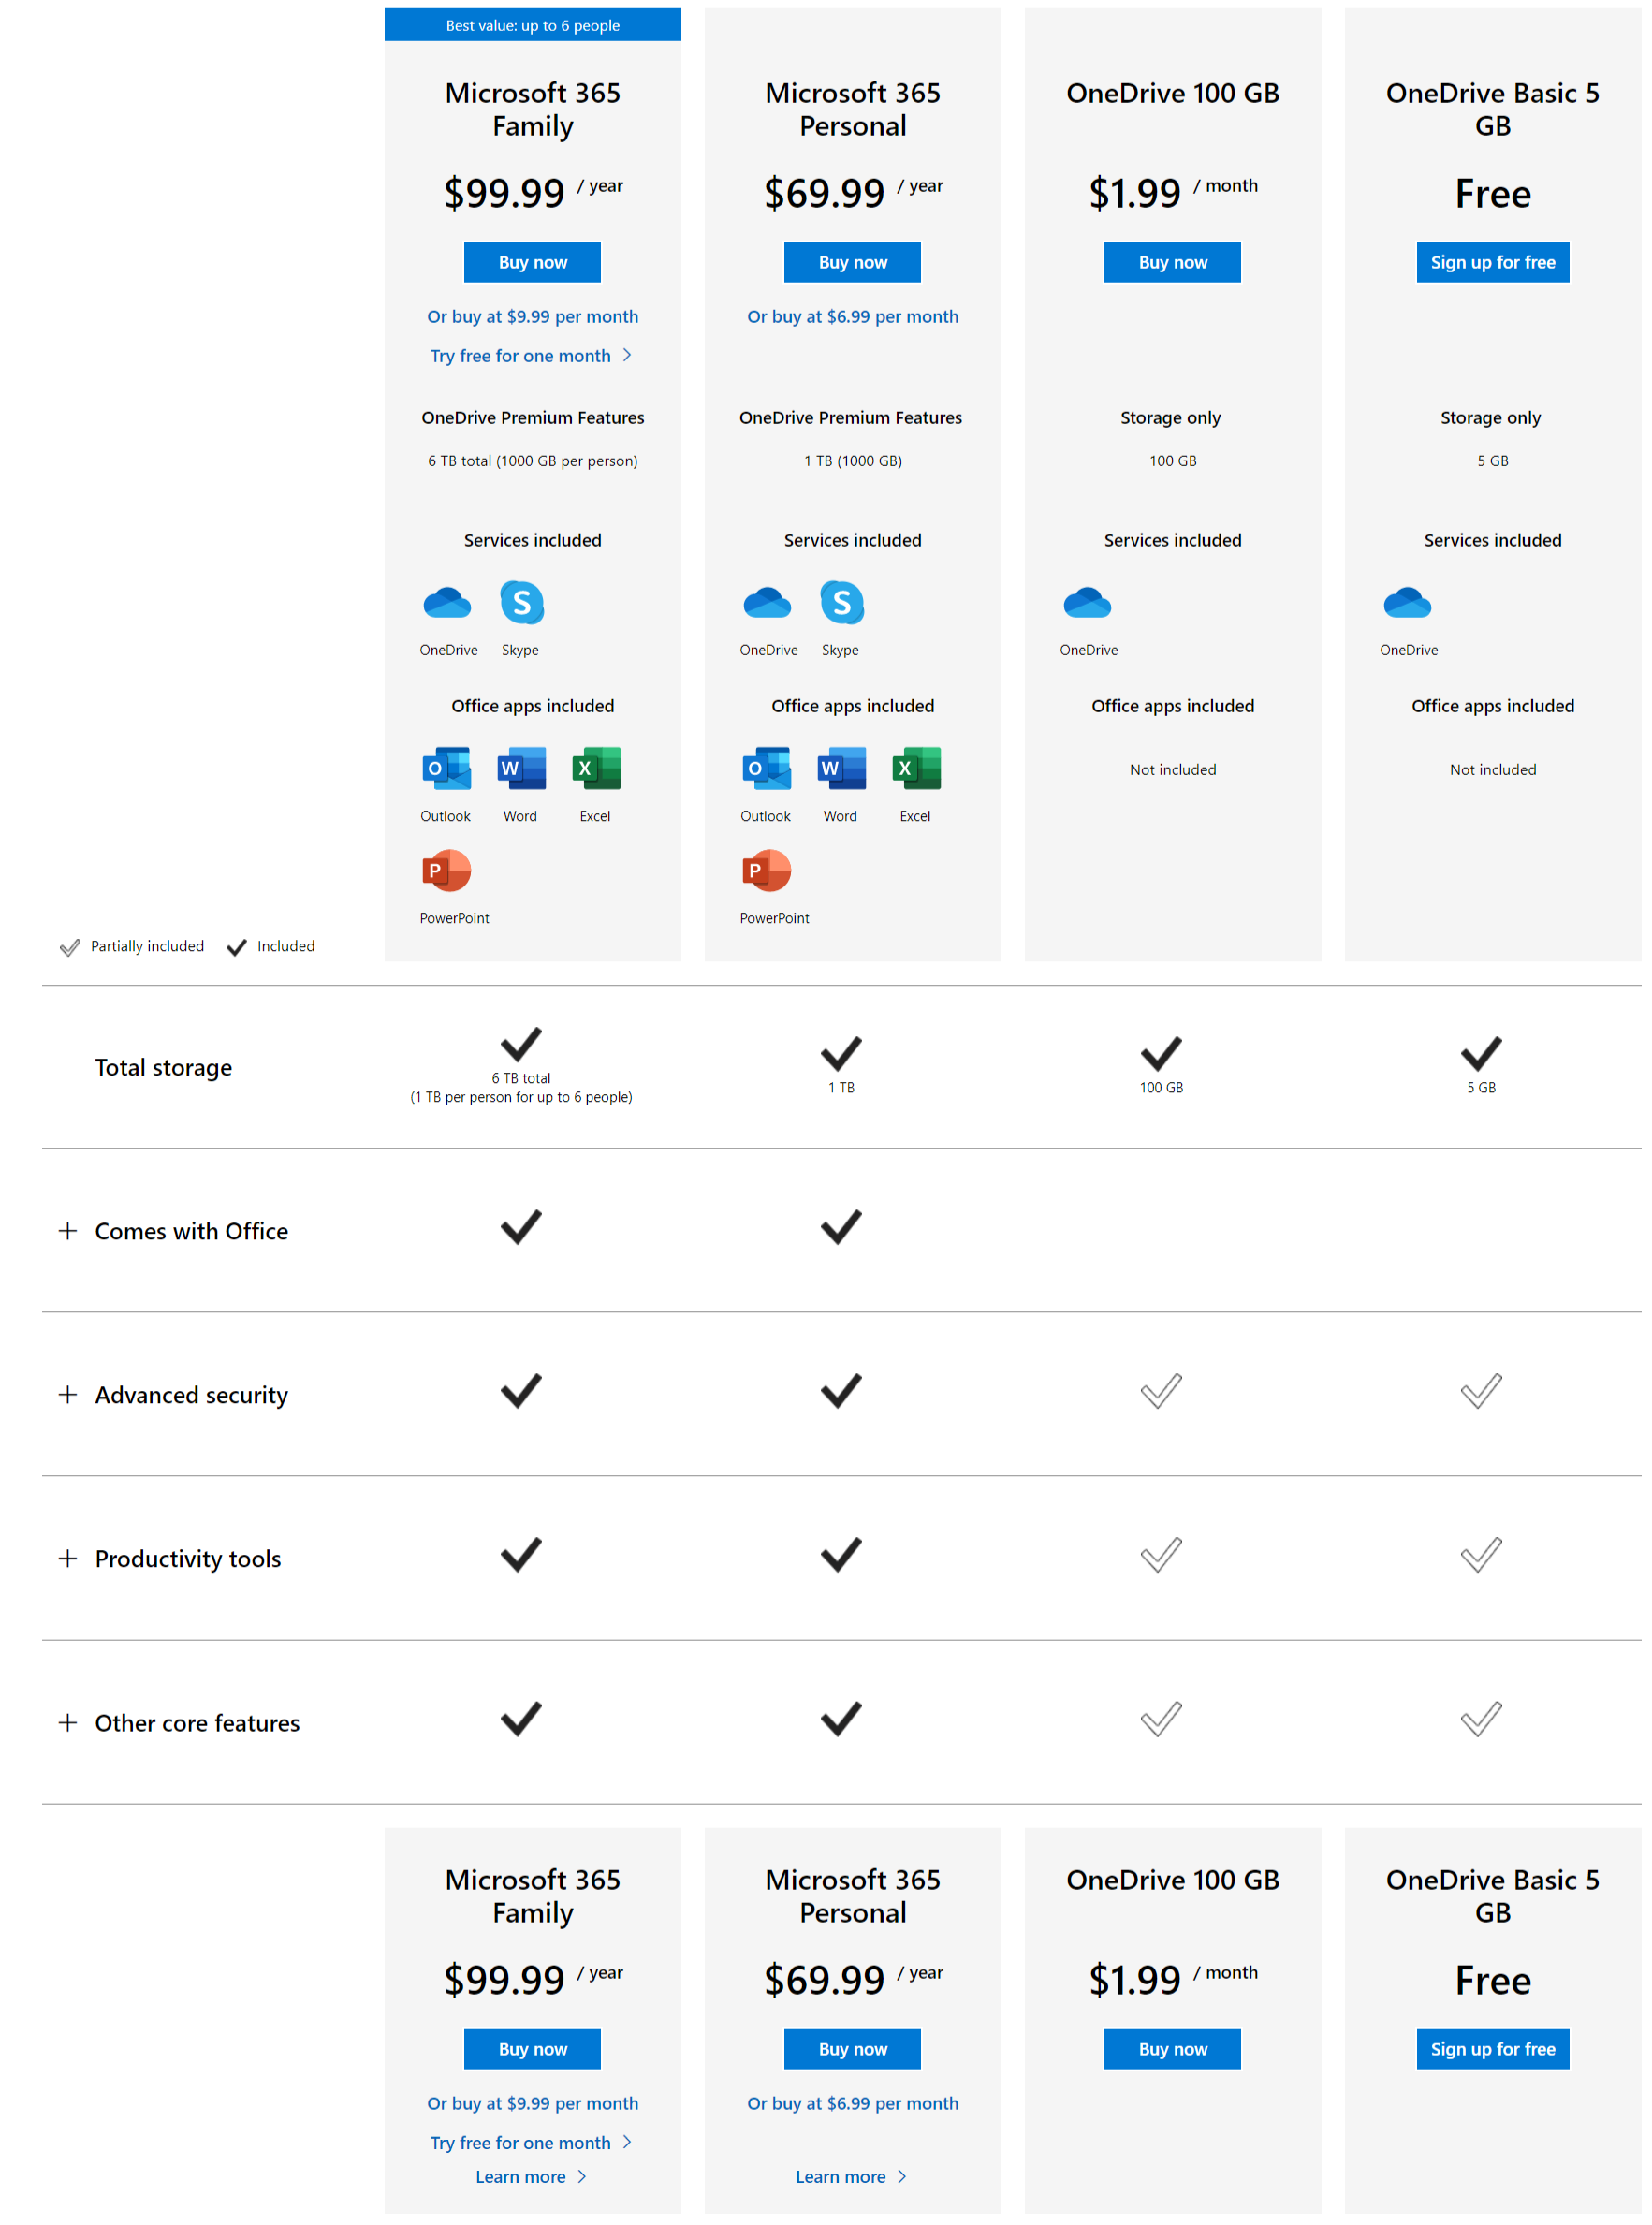 Microsoft OneDrive for Business Pricing